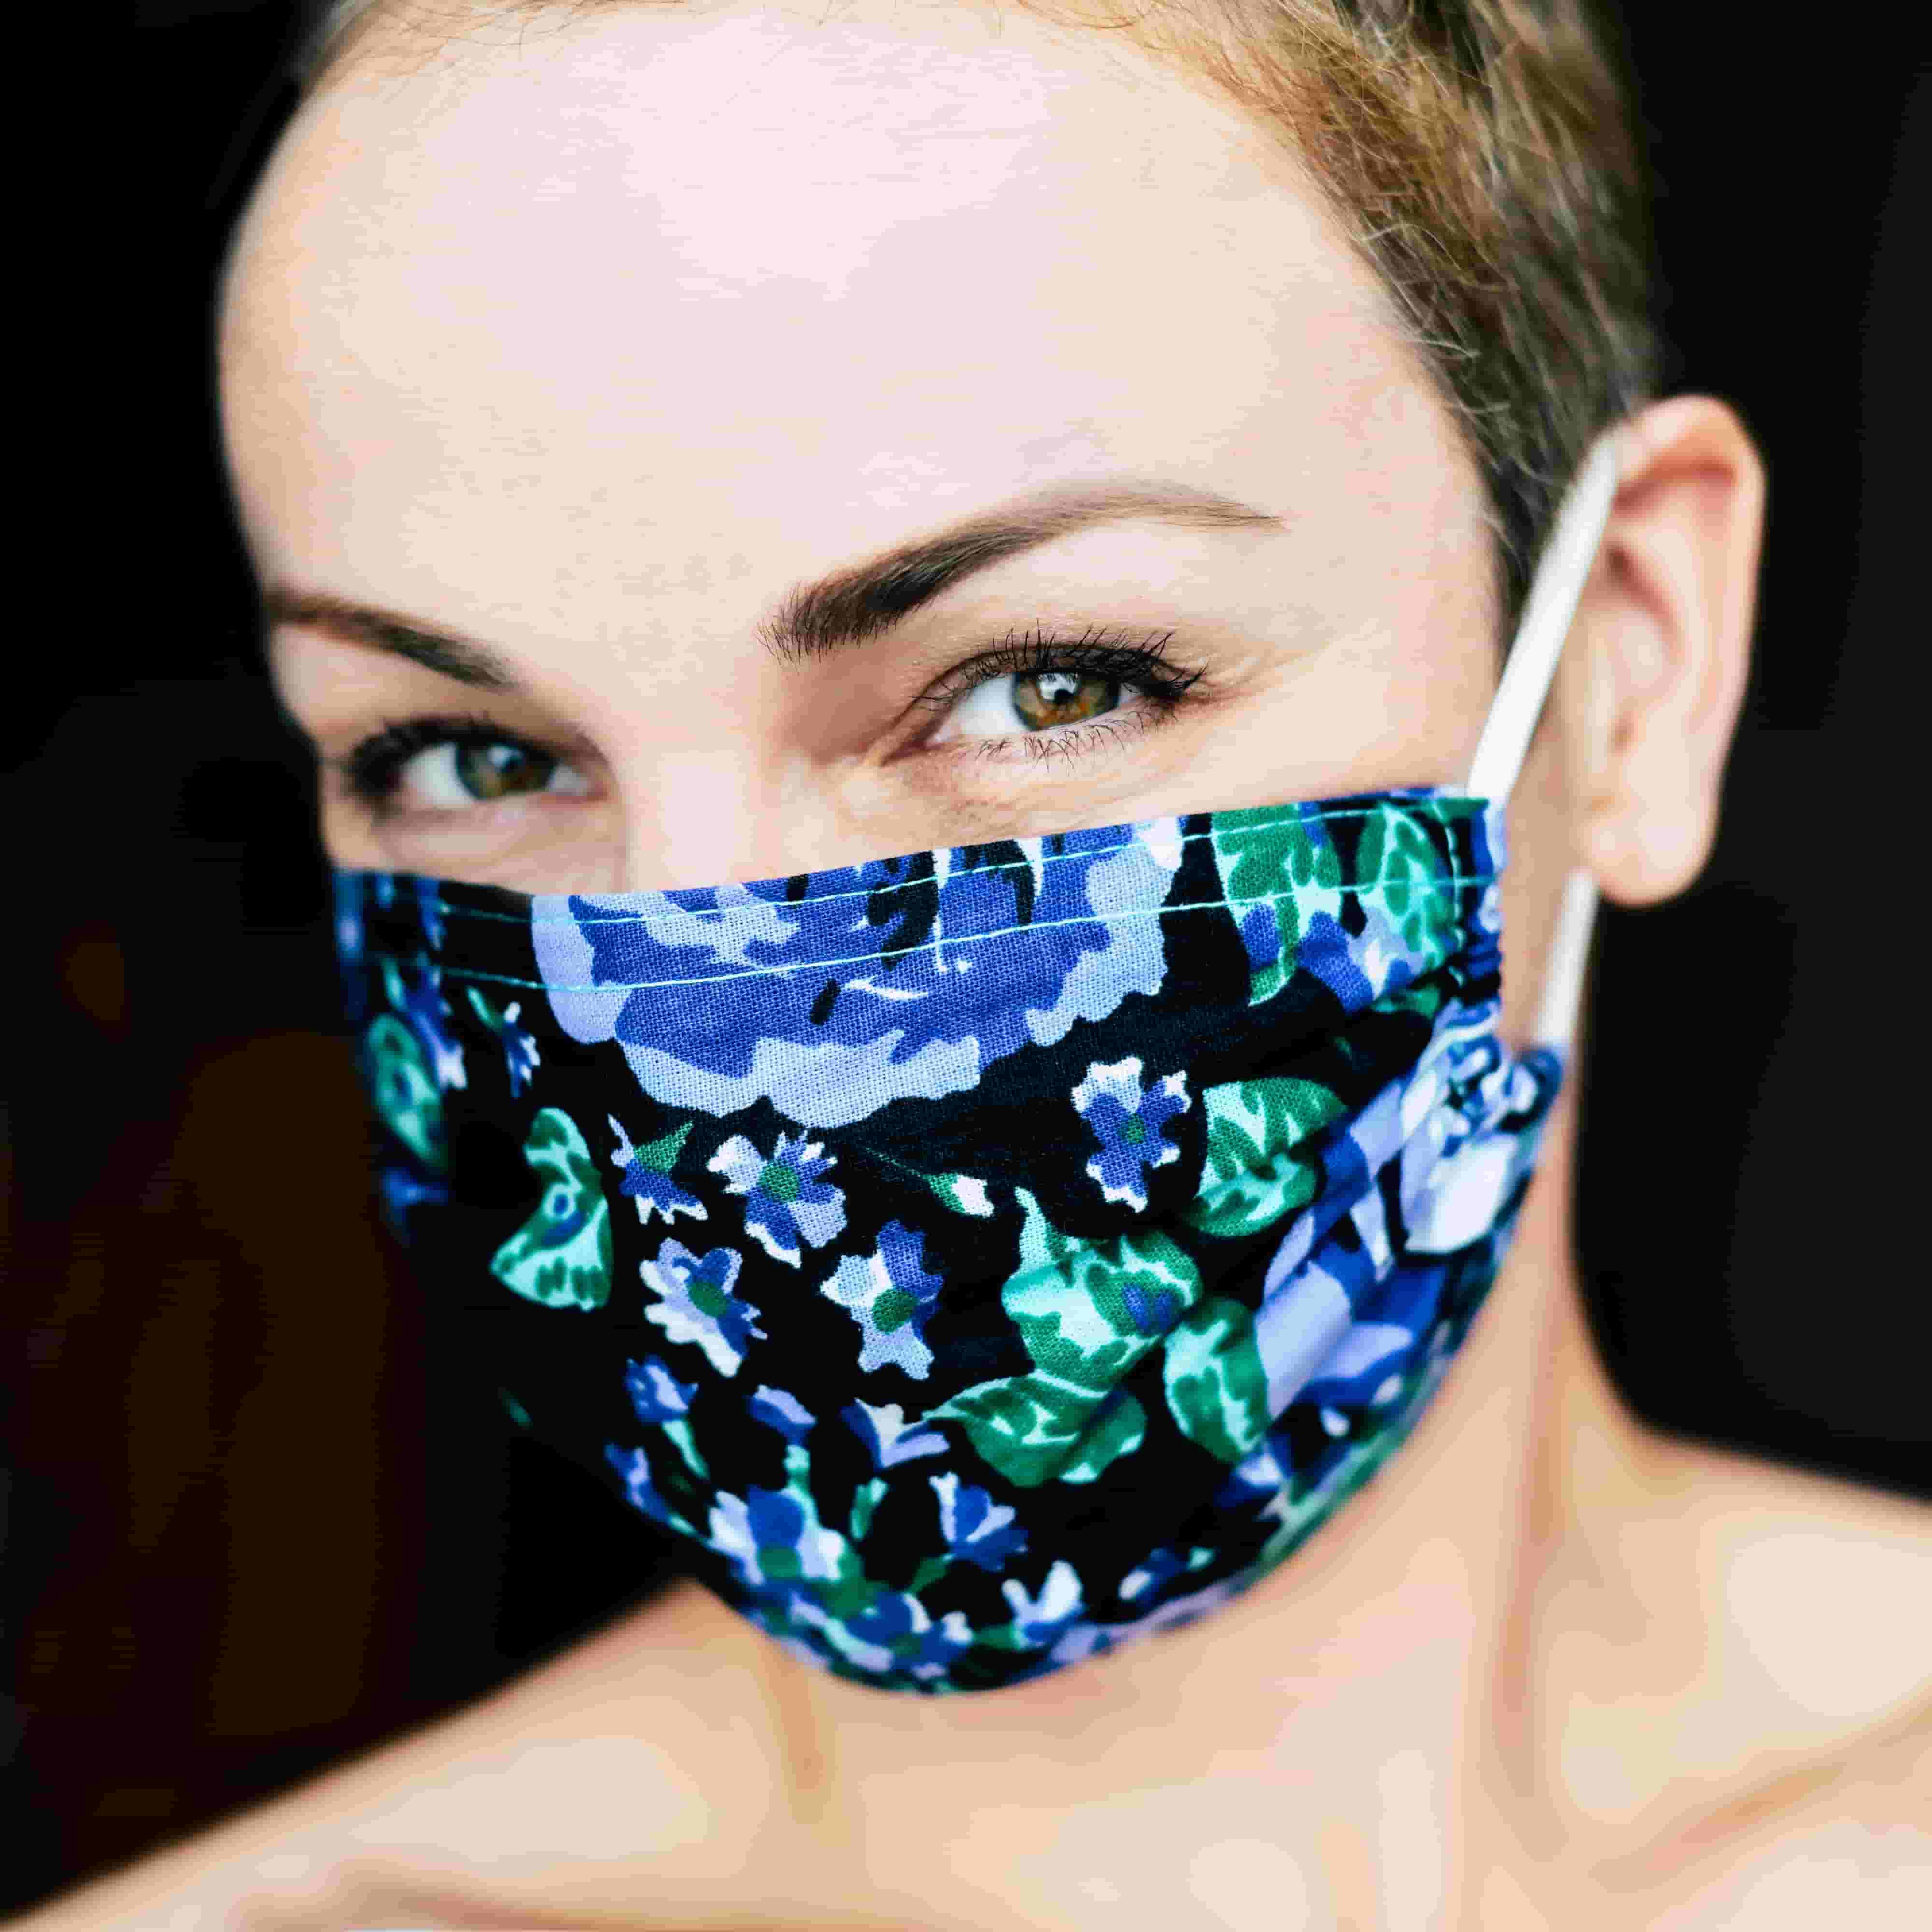 How to cope with face mask anxiety